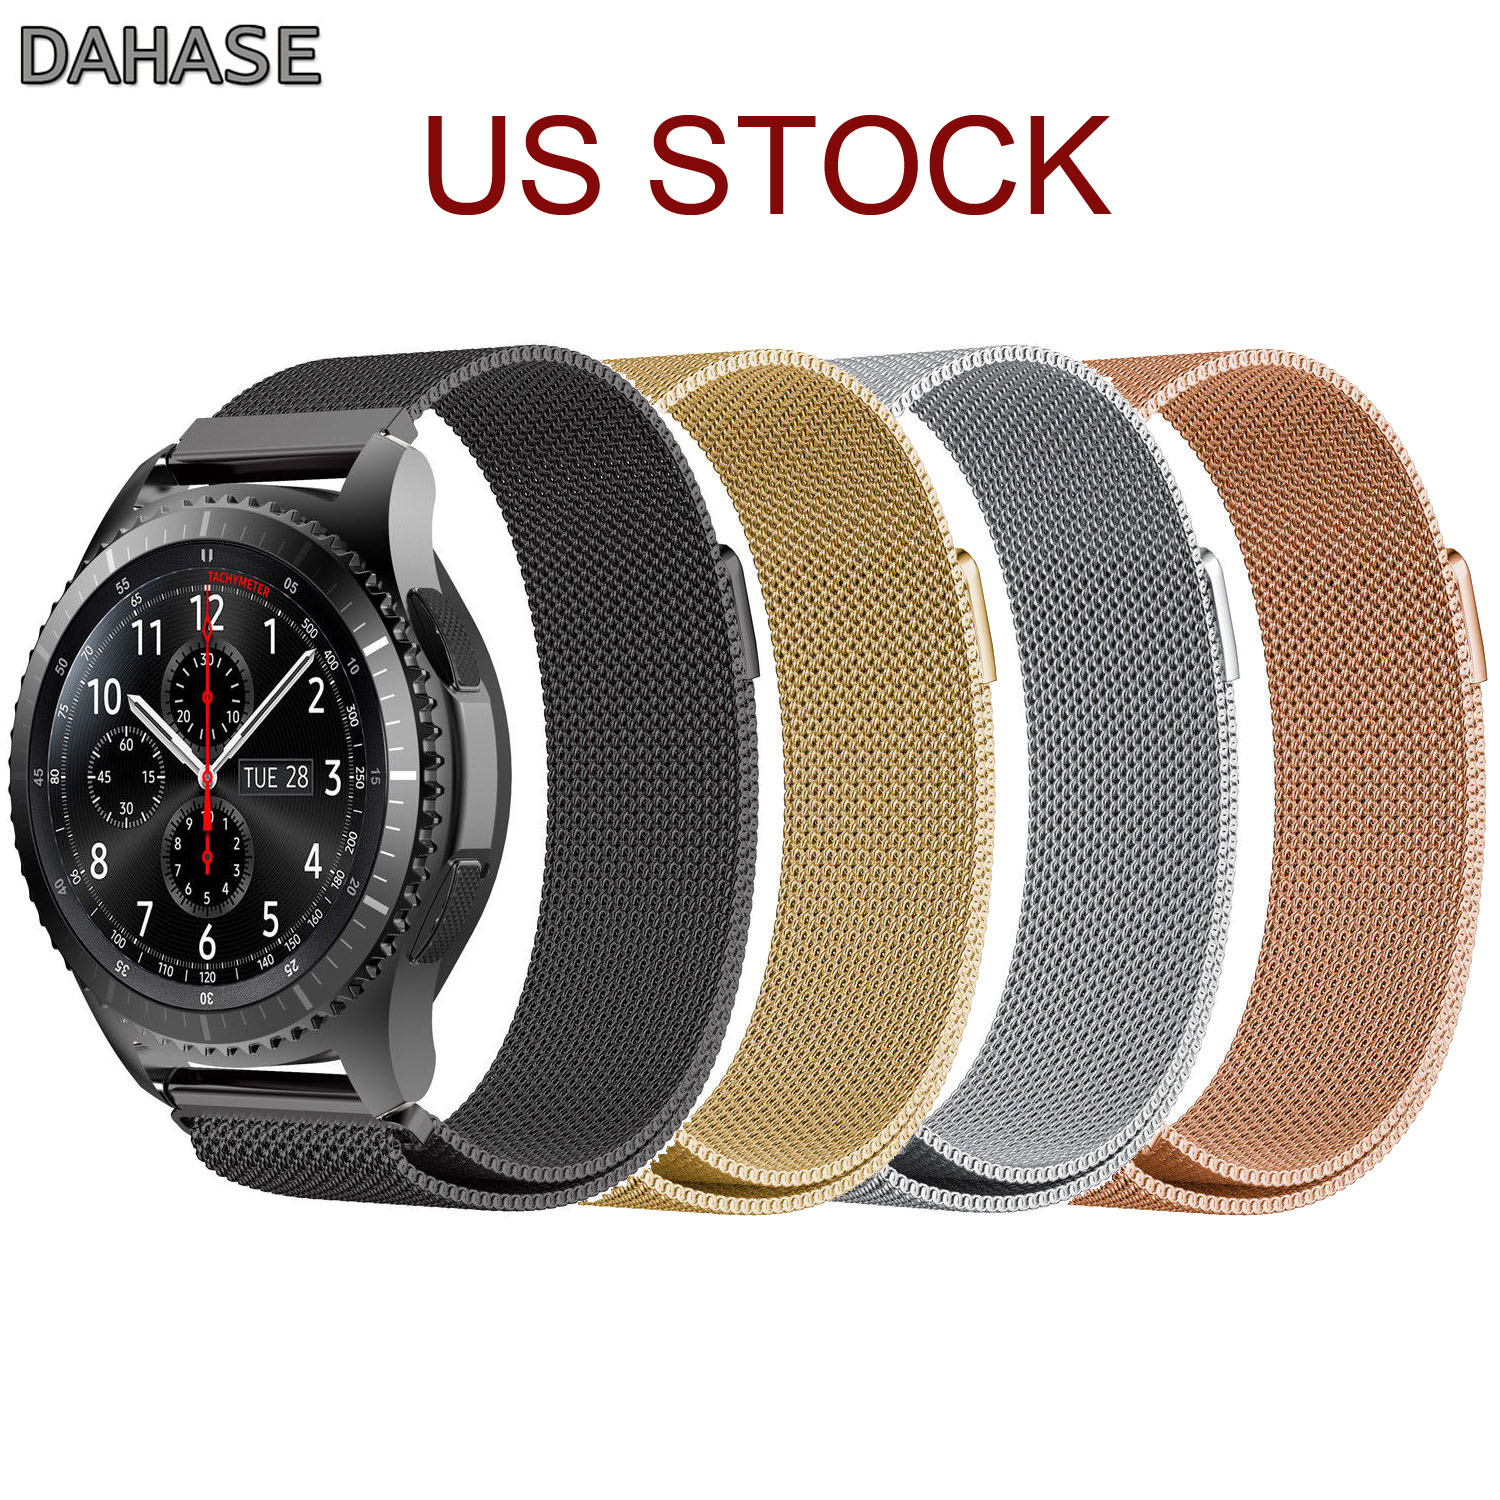 Magnetic Closure Bracelet for Gear S3 Classic Milanese Loop Strap for Samsung Gear S3 Frontier Stainless Steel Watch Band 22mm 2017 new stainless steel bracelet strap watch band milanese magnetic with connector adapter for samsung gear s2 watch band